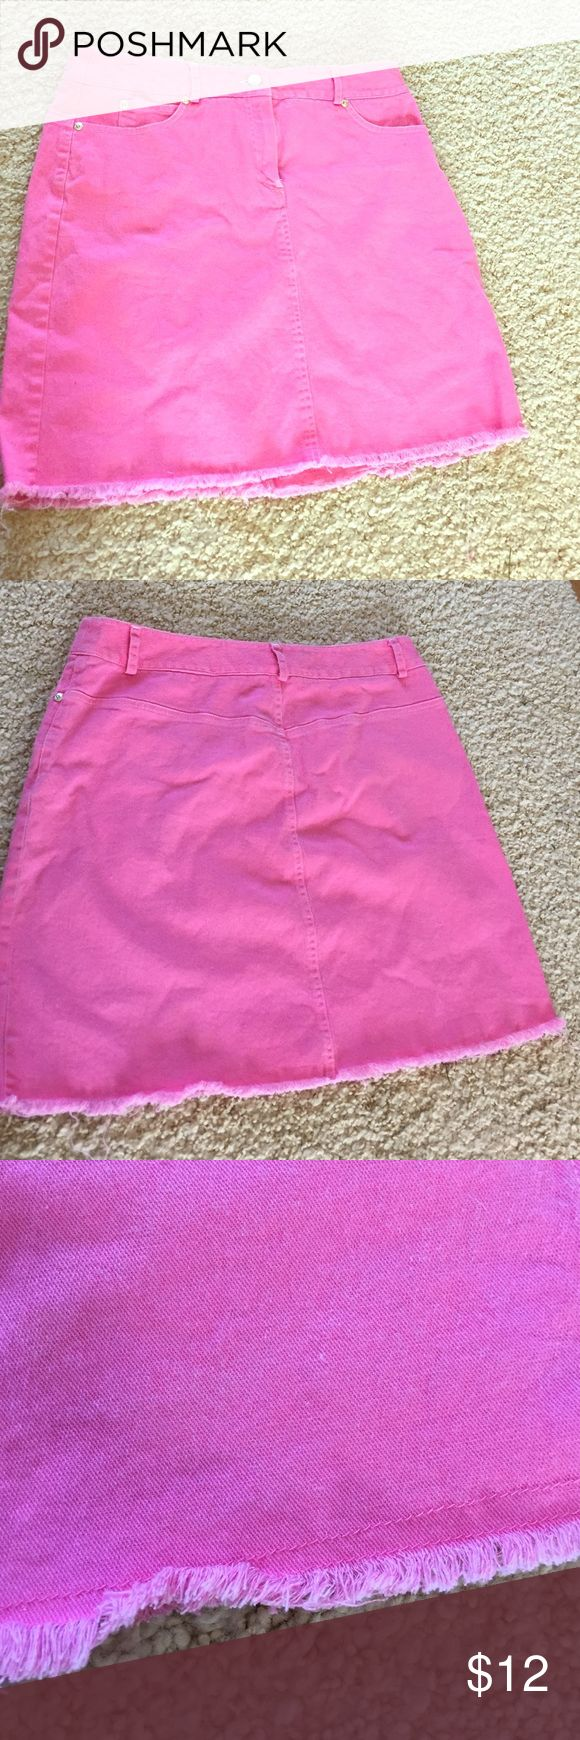 Hot Pink Denim Pencil Skirt Hot pink denim pencil skirt. I got this at a boutique that sells designer clothes for low prices and the tag has been cut out. It goes well with Lilly Pulitzer. Perfect for a cruise or summer party! Skirts Pencil